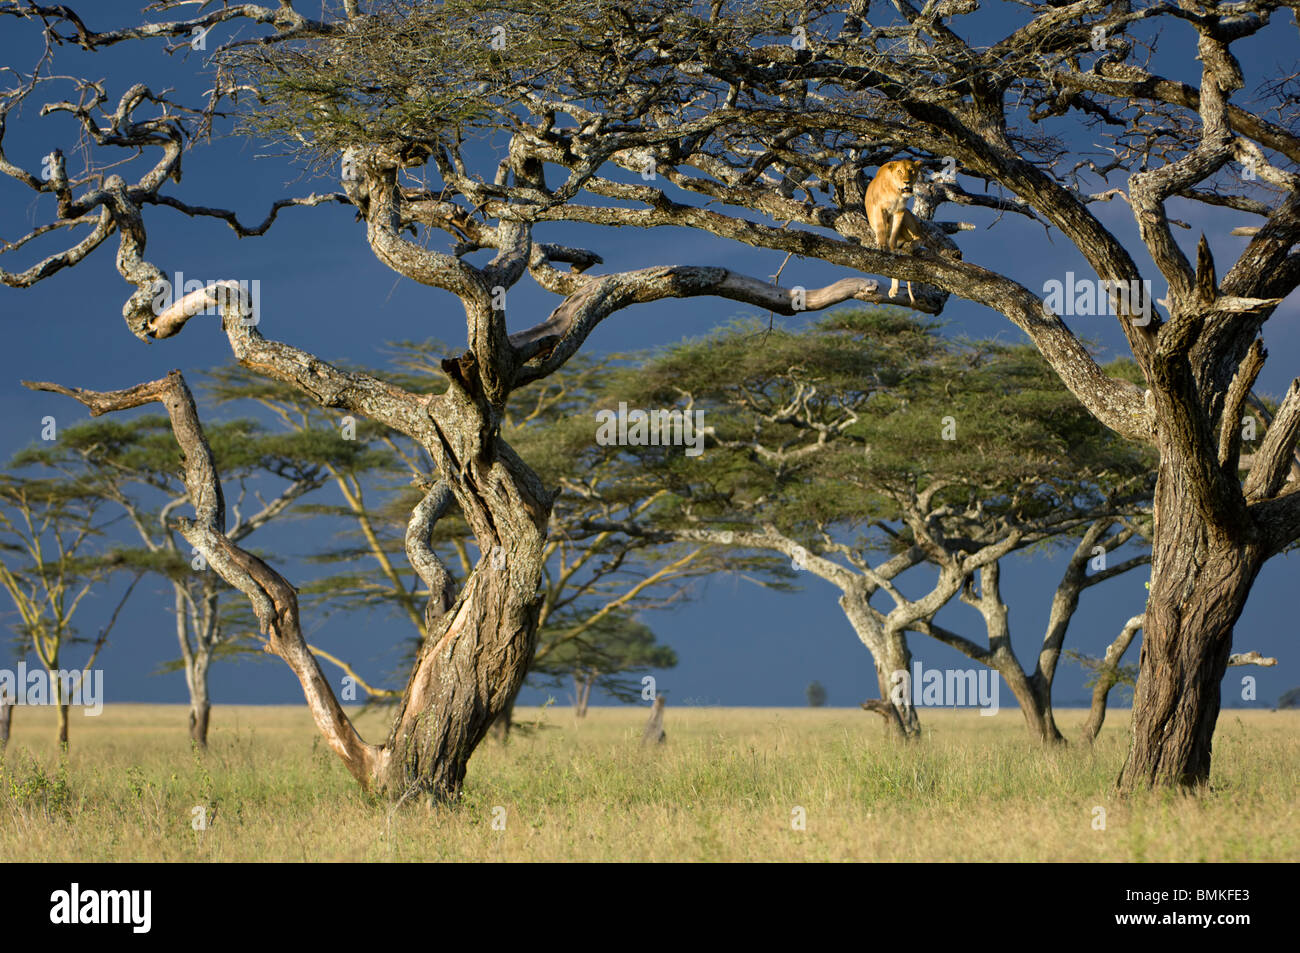 African Lioness using tree as a lookout, Nogorongoro Conservation Area, Serengeti National Park, Tanzania. - Stock Image